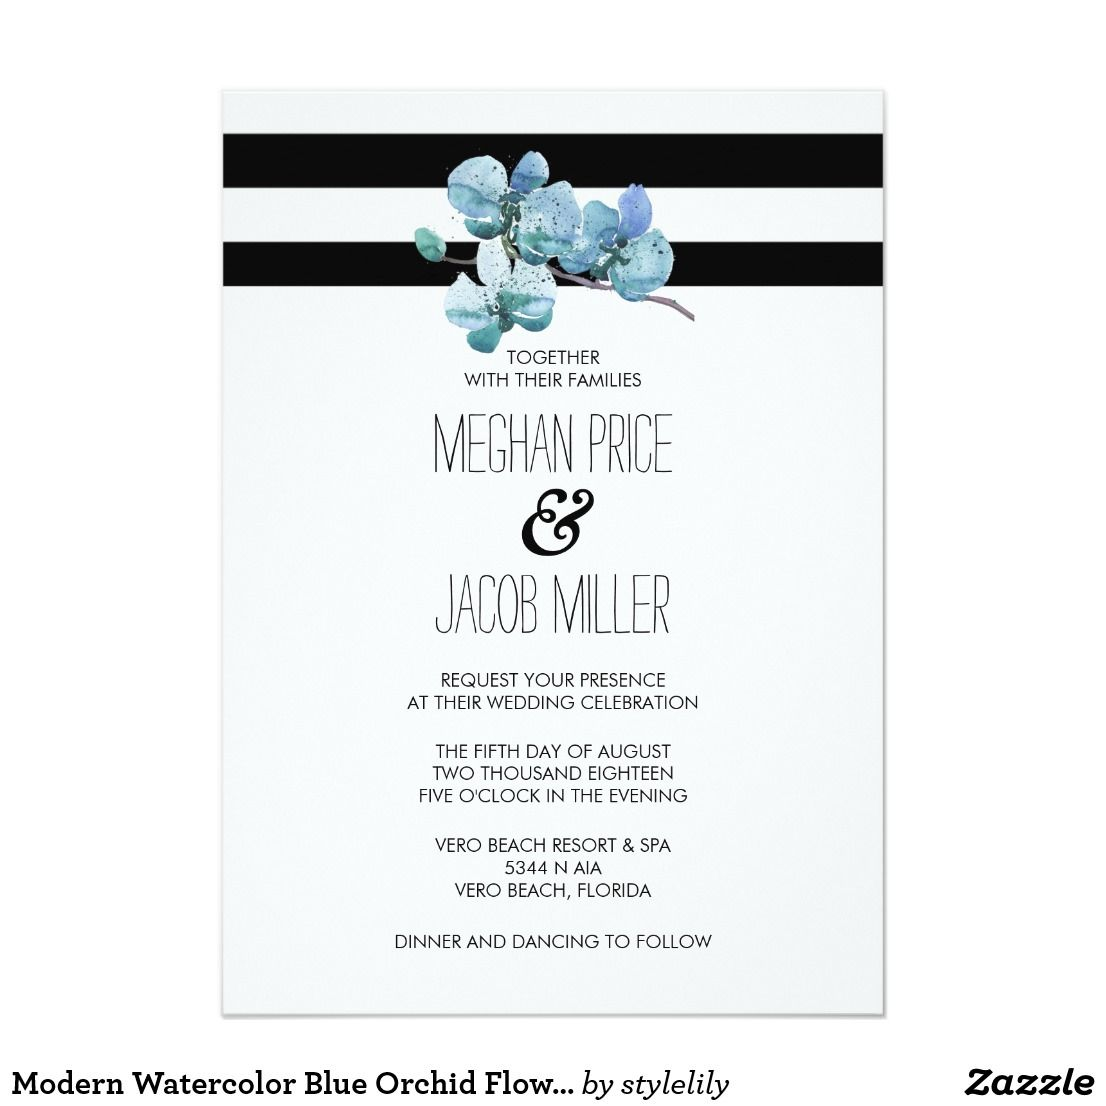 Modern Watercolor Blue Orchid Flower Wedding Card Blue Orchid